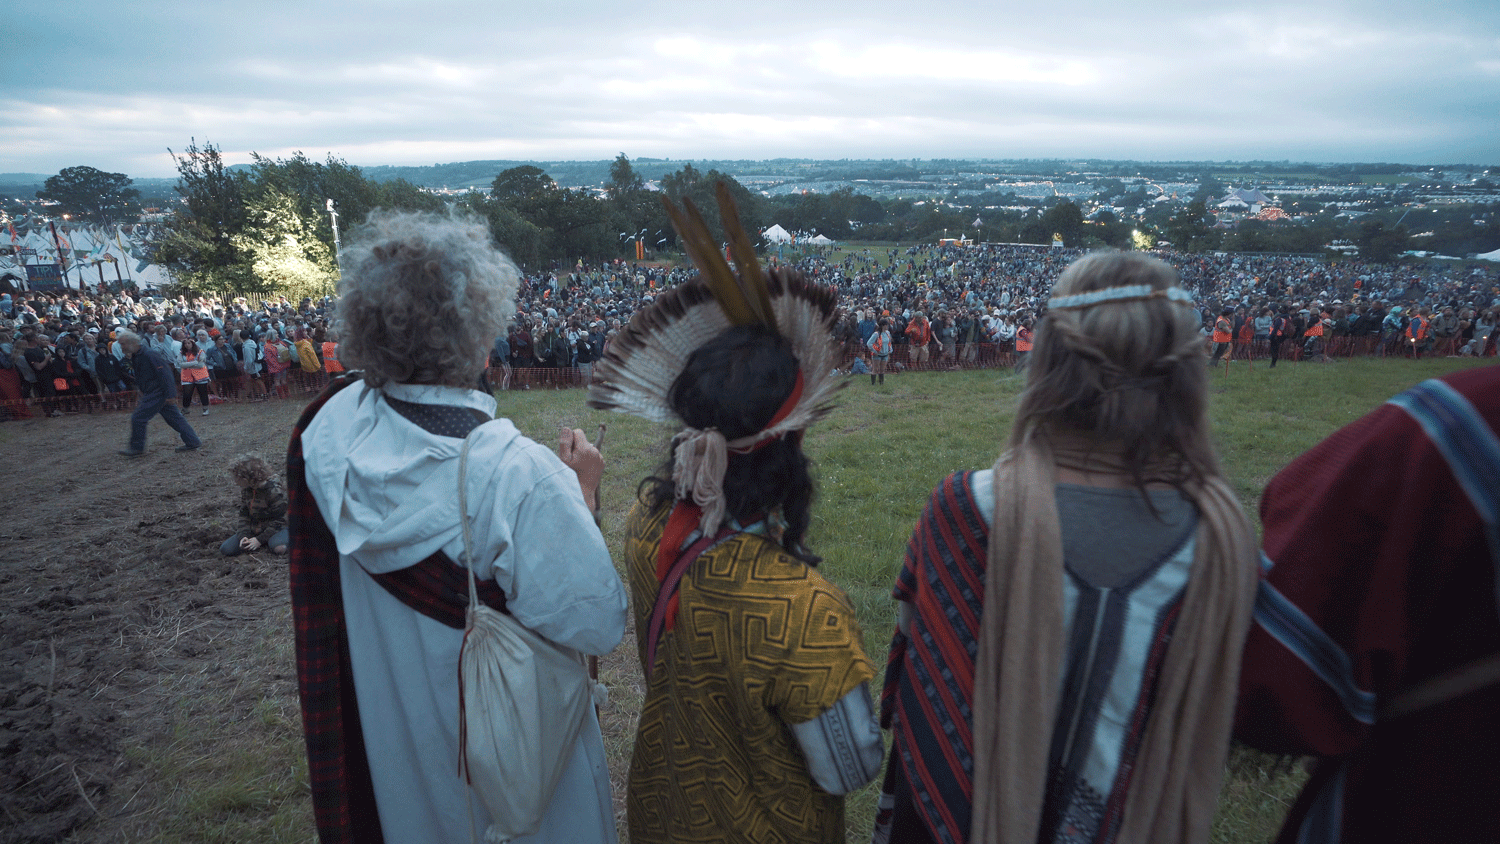 Opening Ceremony at Glastonbury Festival 2019